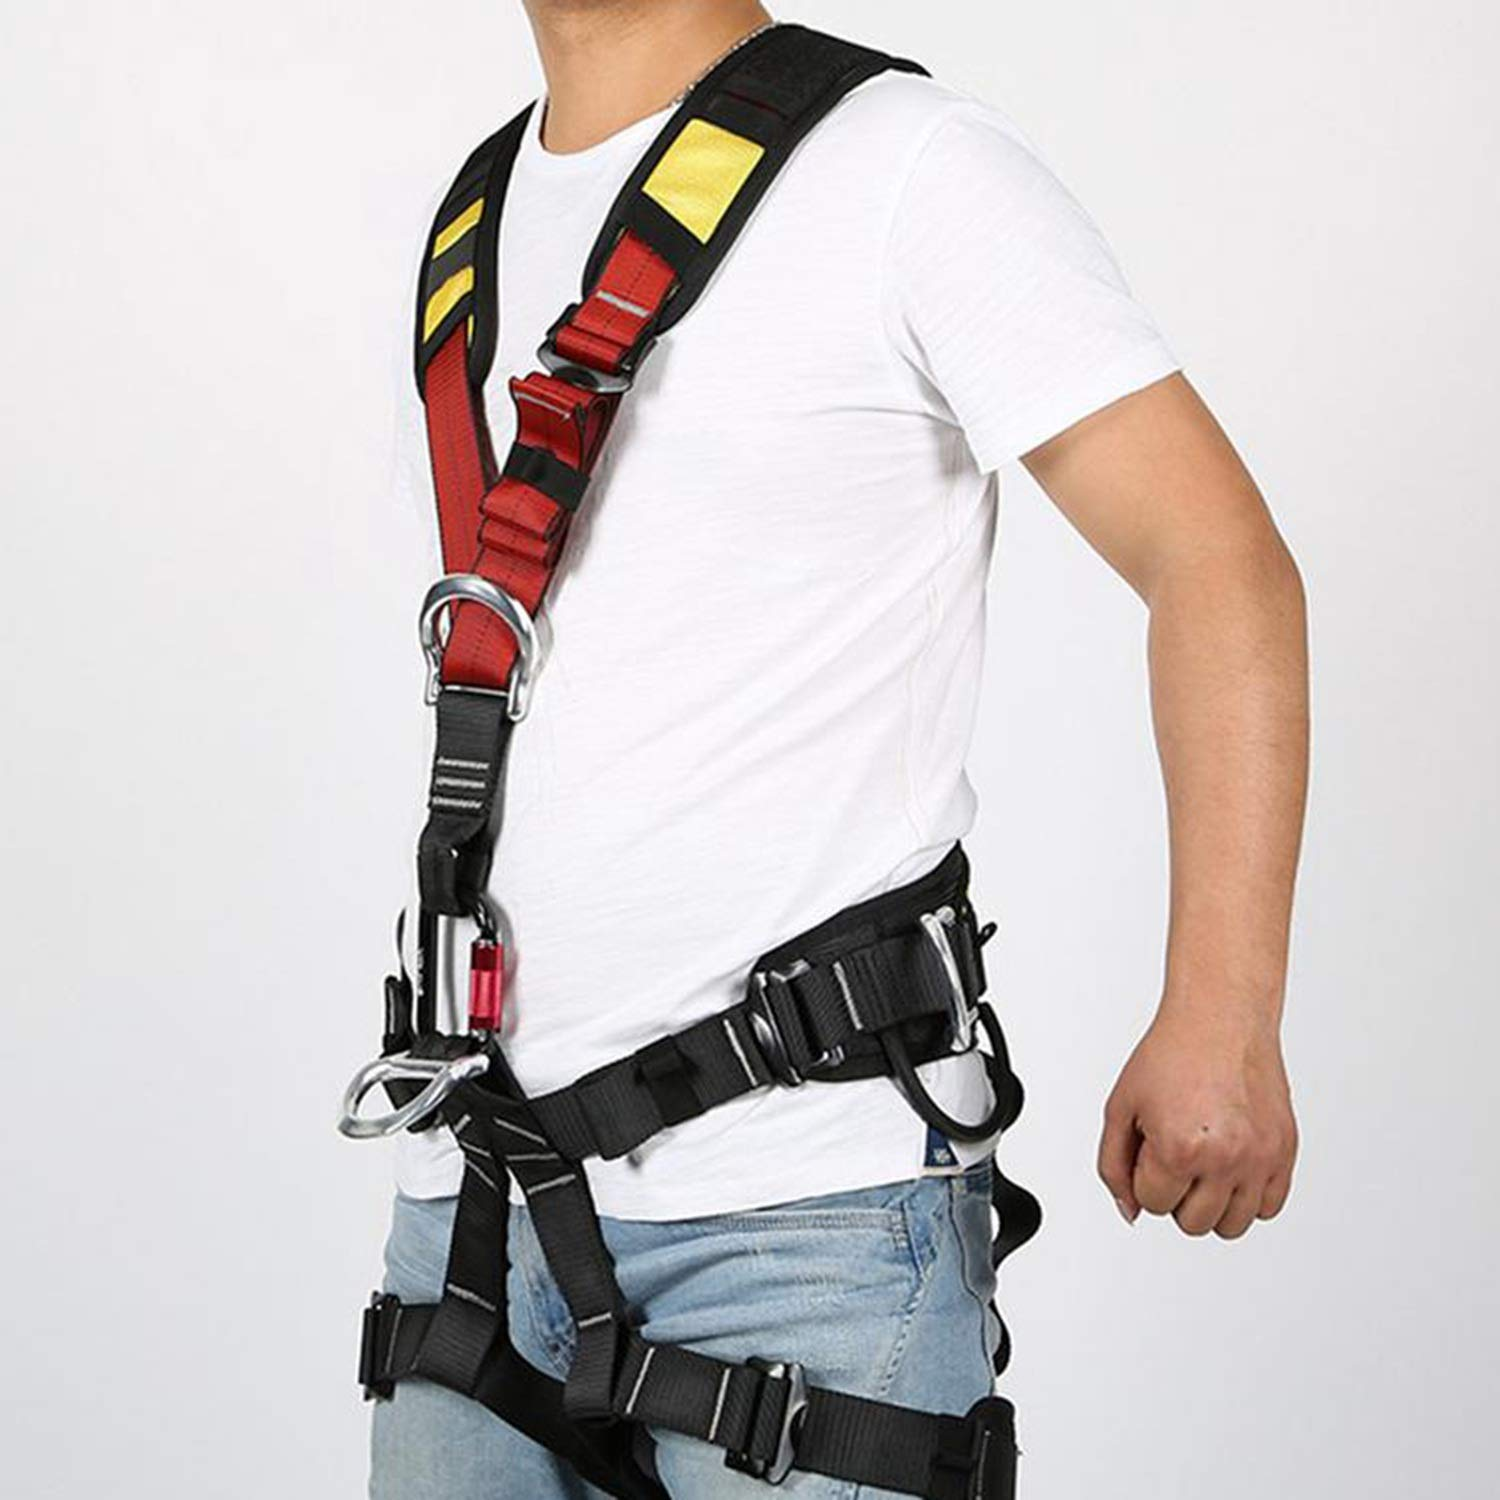 Nrpfell Outdoor Climbing Rock Rappelling Mountaineering Accessories Body Wearing Seat Belt Sitting Waist Bust Protection by Nrpfell (Image #3)